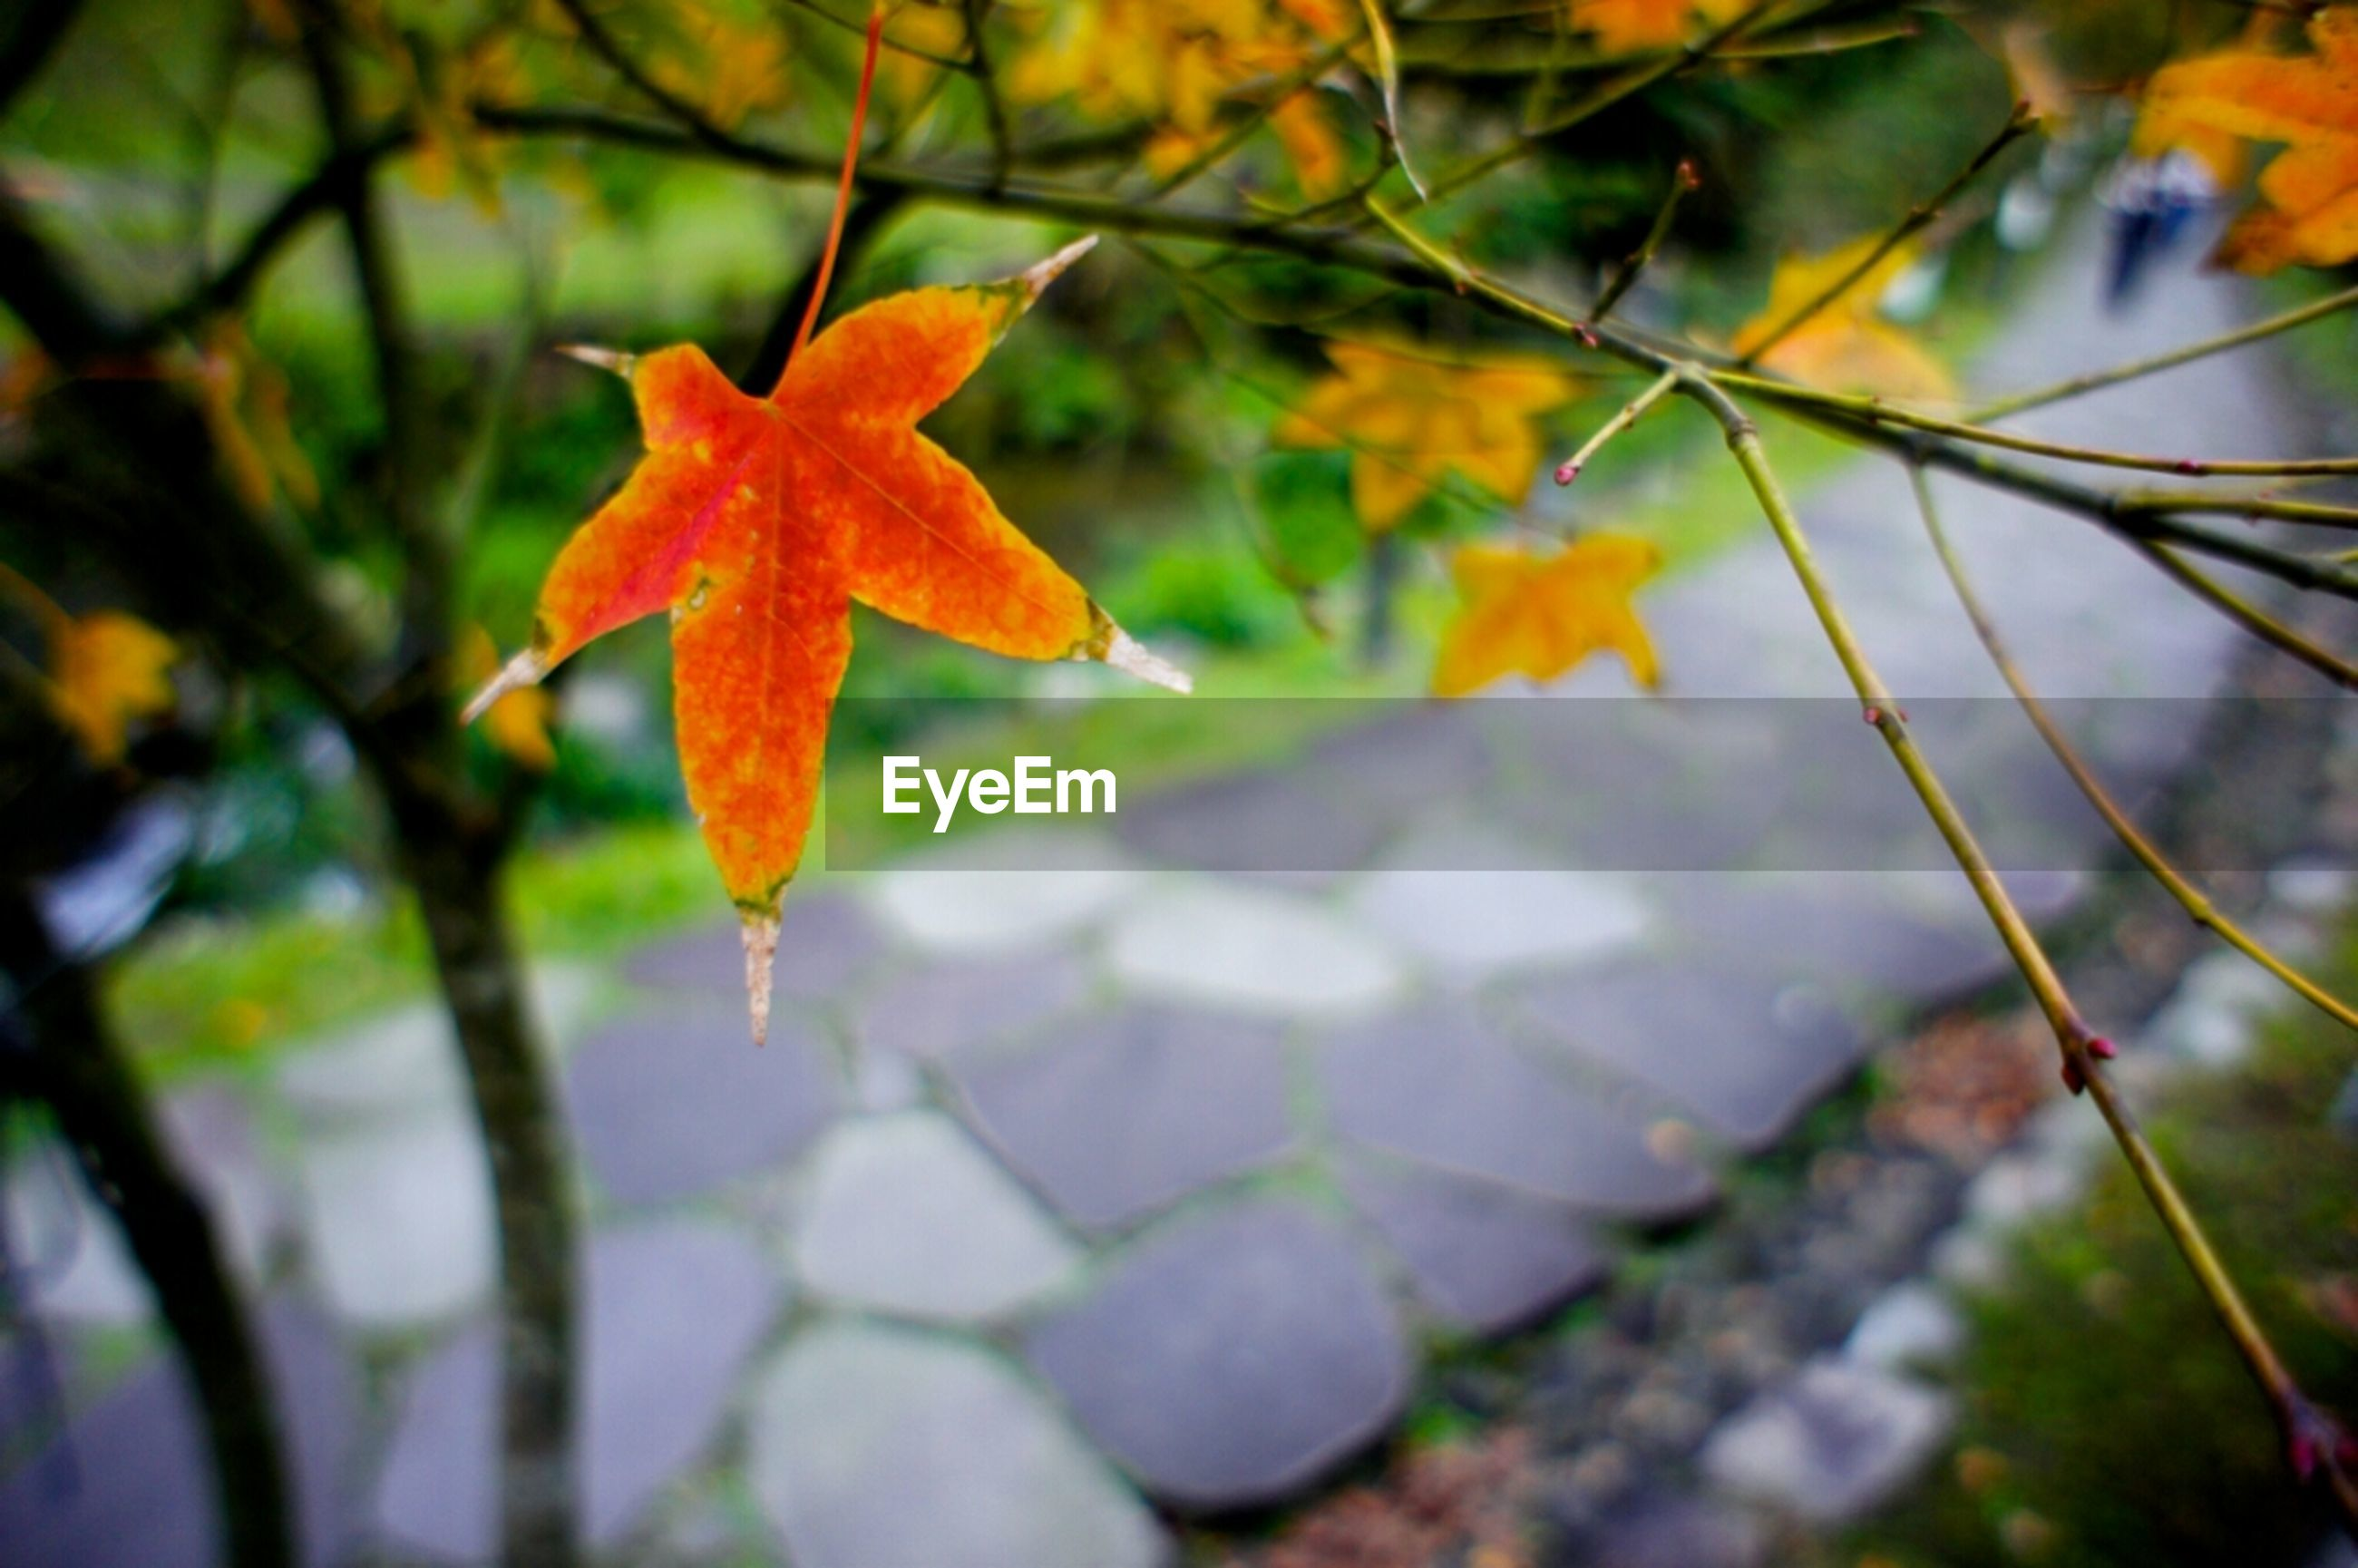 autumn, season, leaf, change, orange color, focus on foreground, close-up, growth, fragility, beauty in nature, nature, leaves, maple leaf, plant, freshness, flower, selective focus, drop, day, petal